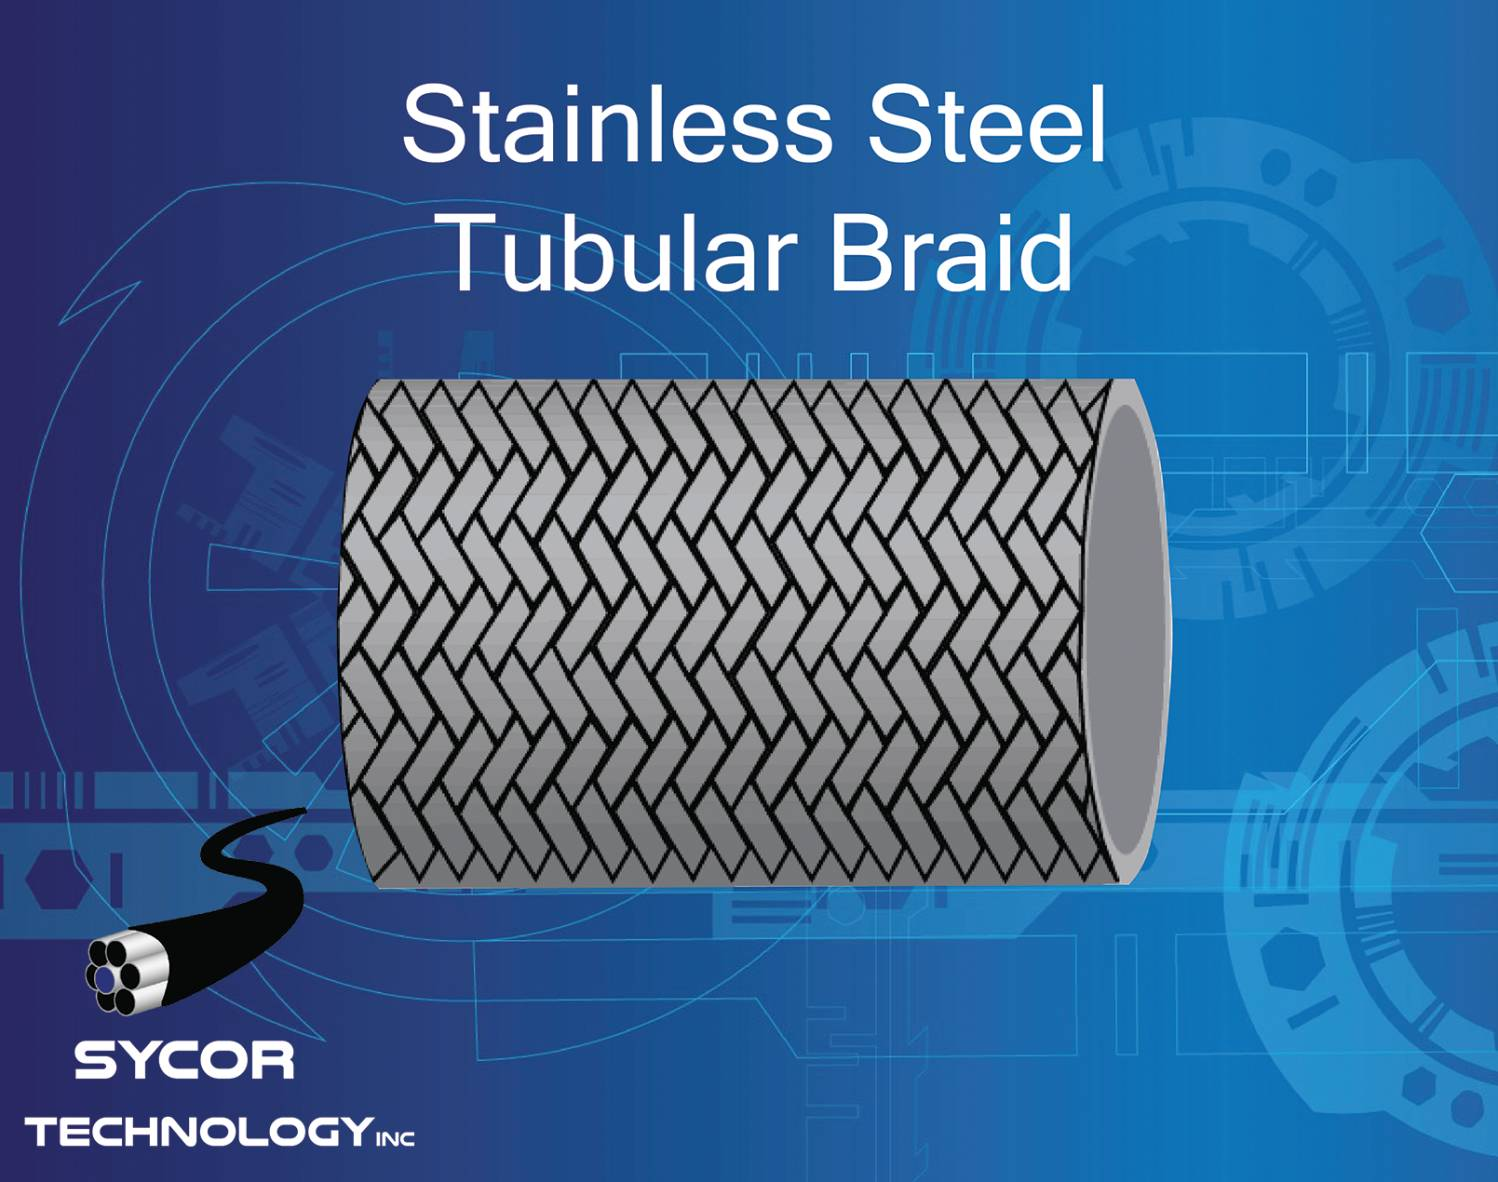 Stainless Steel Tubular Braid